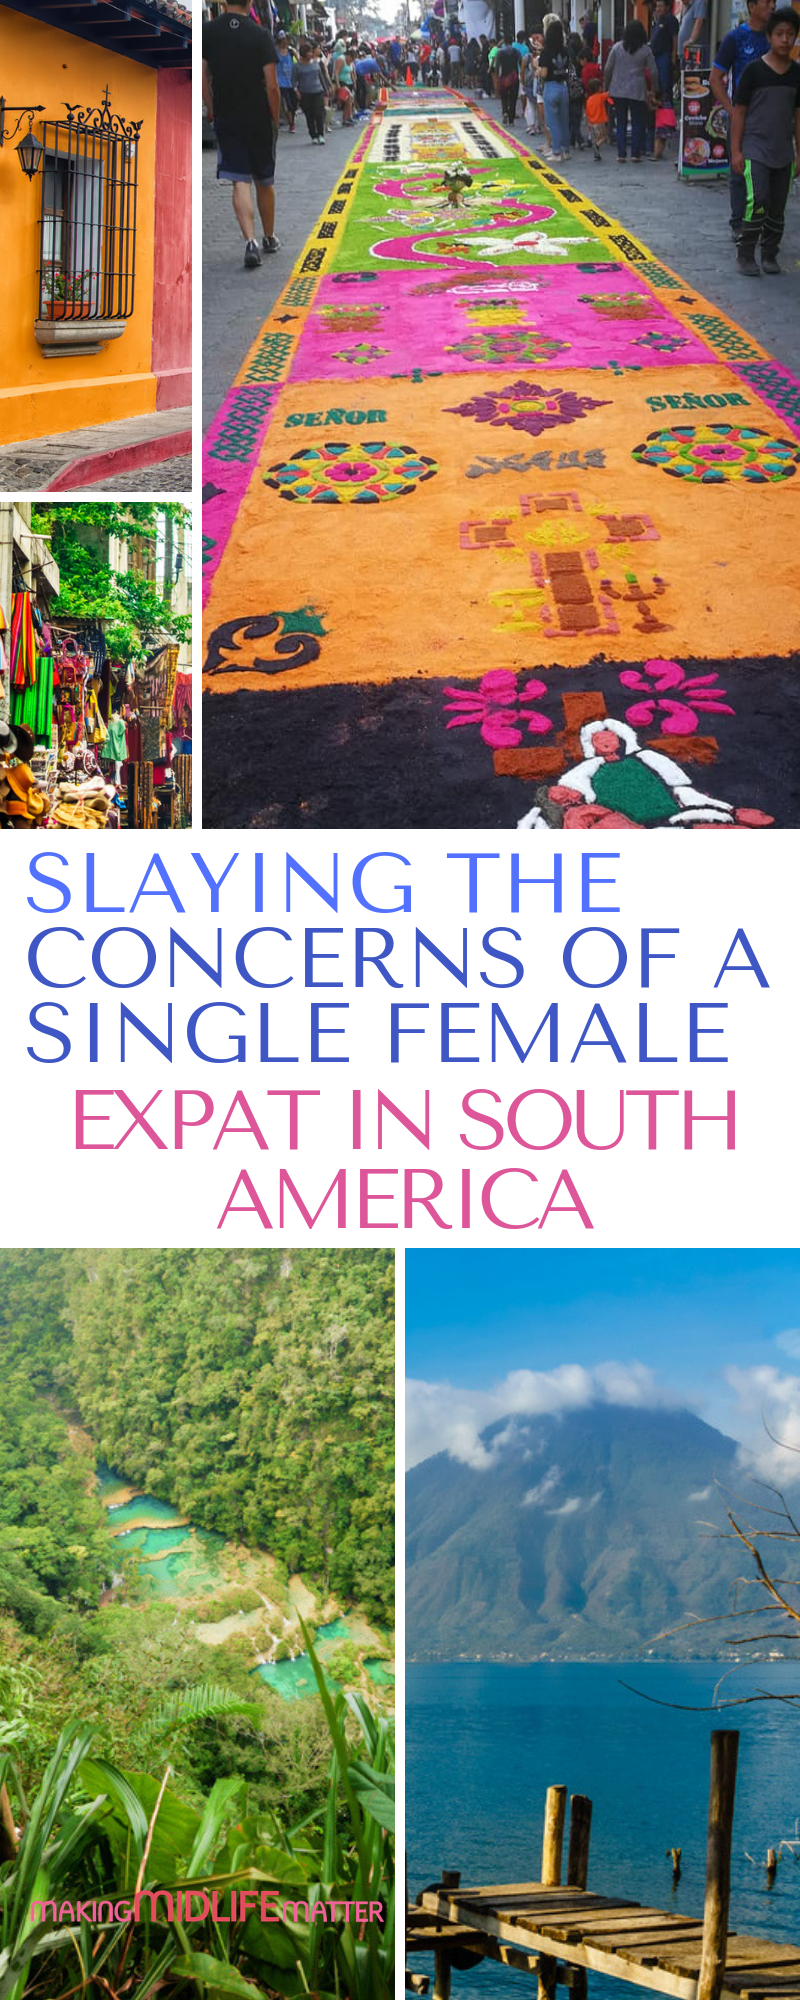 Are you single and wanting to explore or maybe move to South America but are too afraid? Let's slay those concerns now! #expat #nomad #singlelife